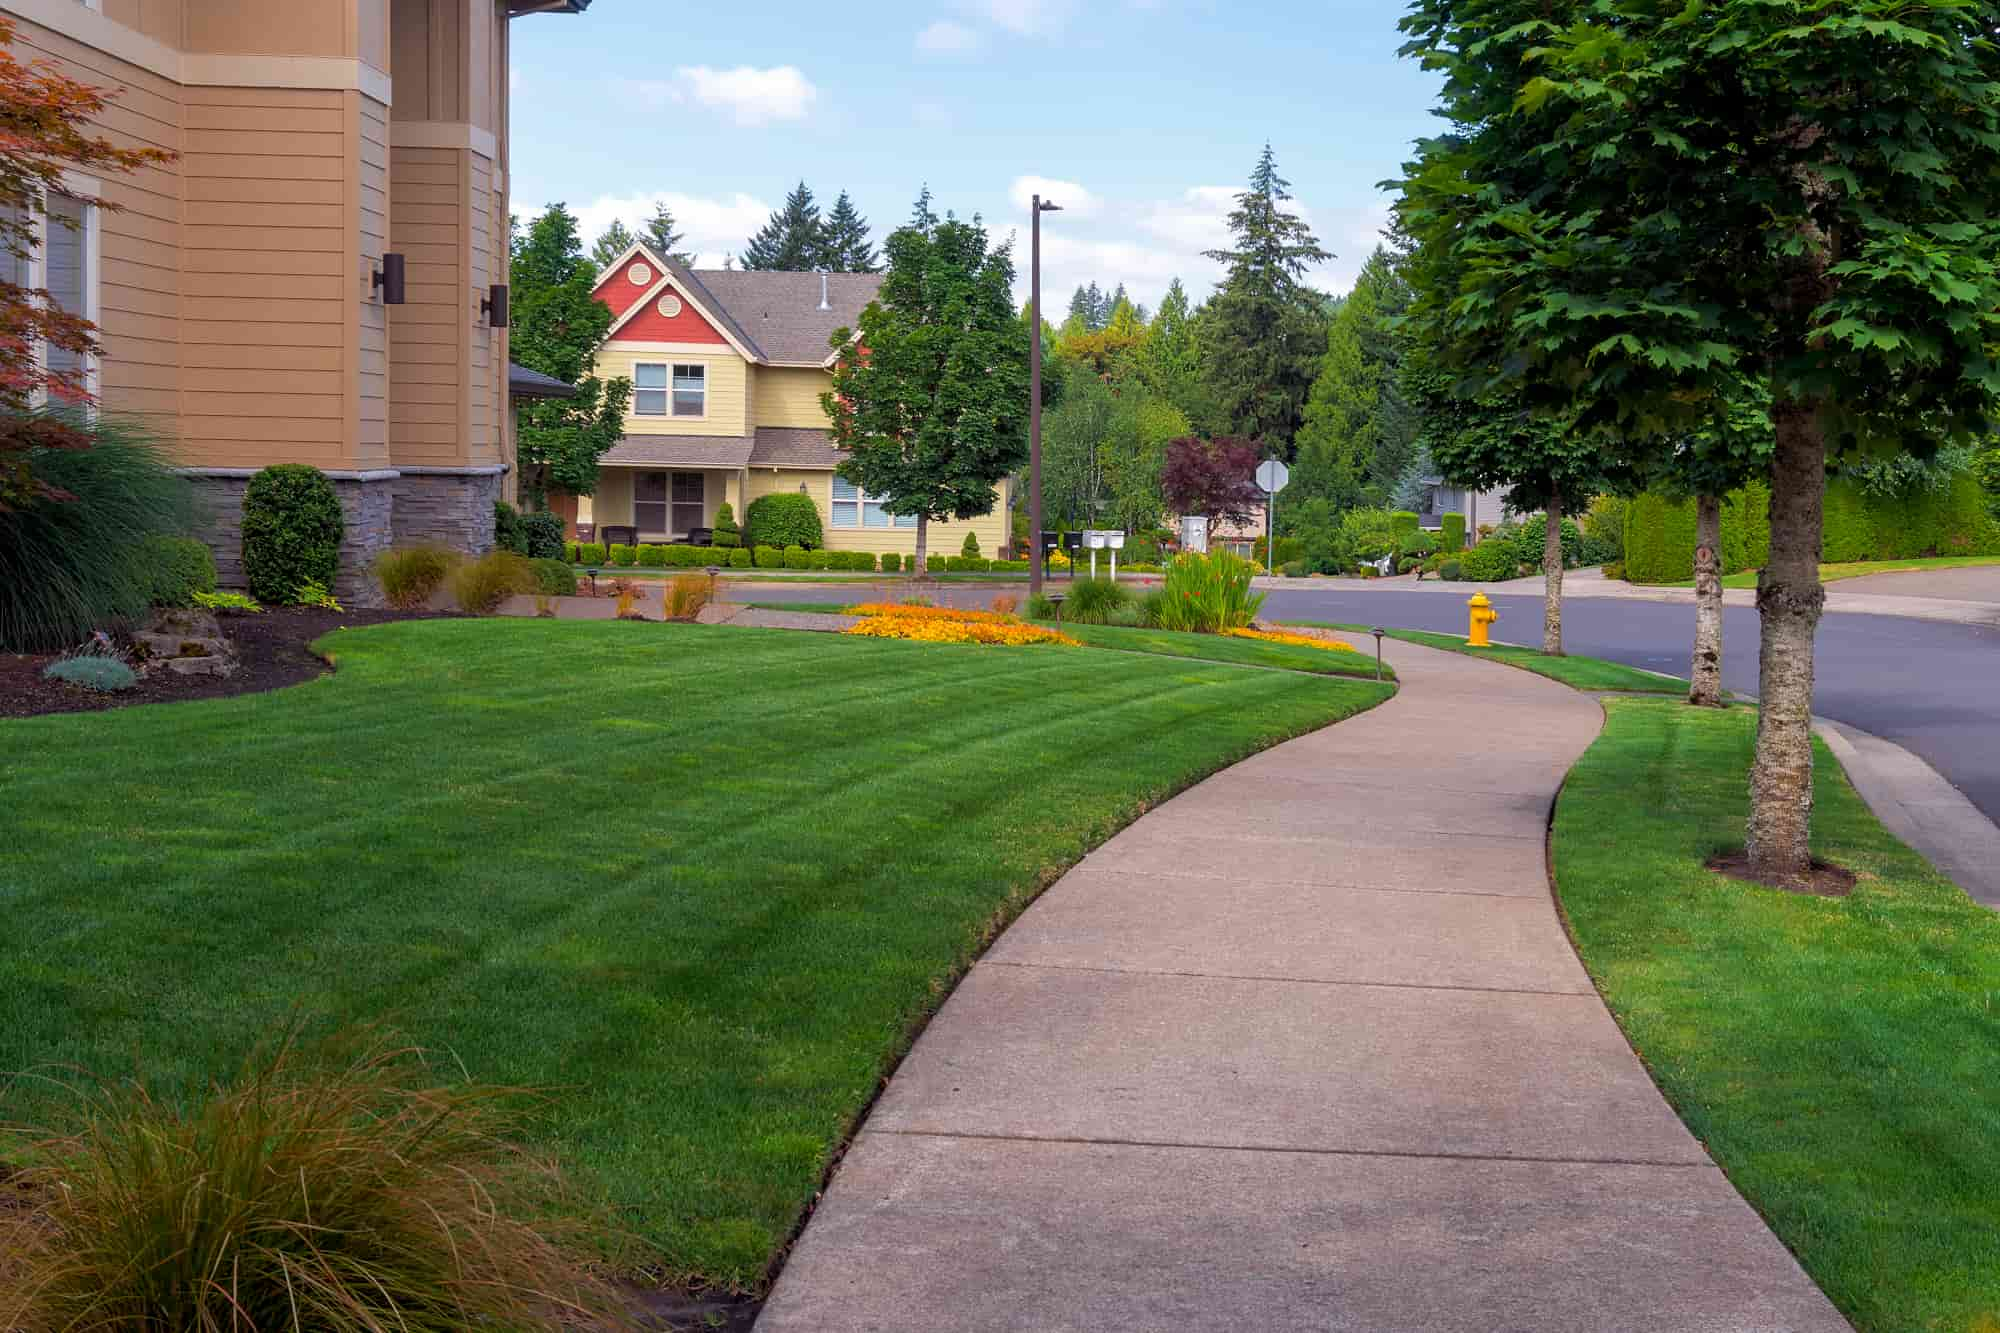 front yard and curb after edging